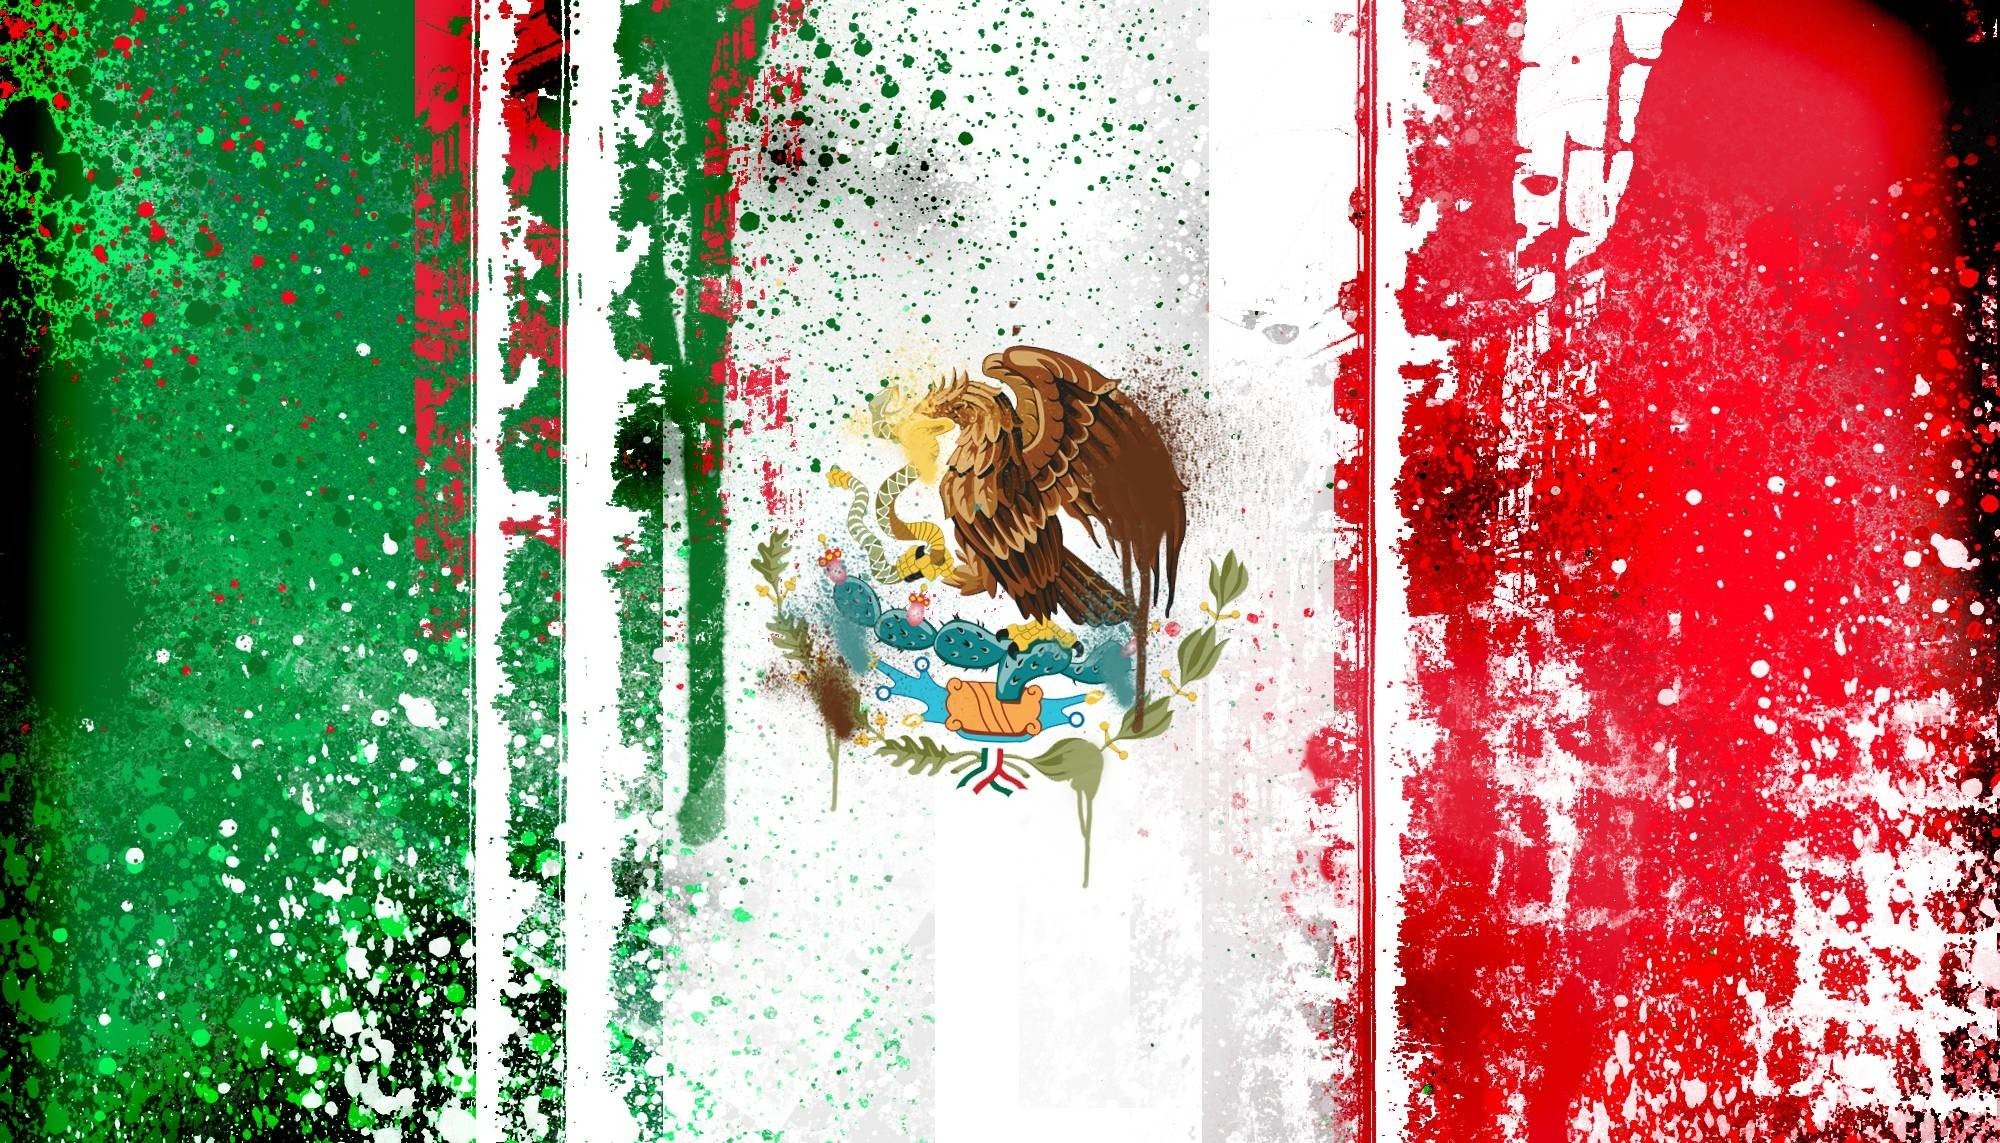 Mexican Wallpaper 44 images 2000x1143